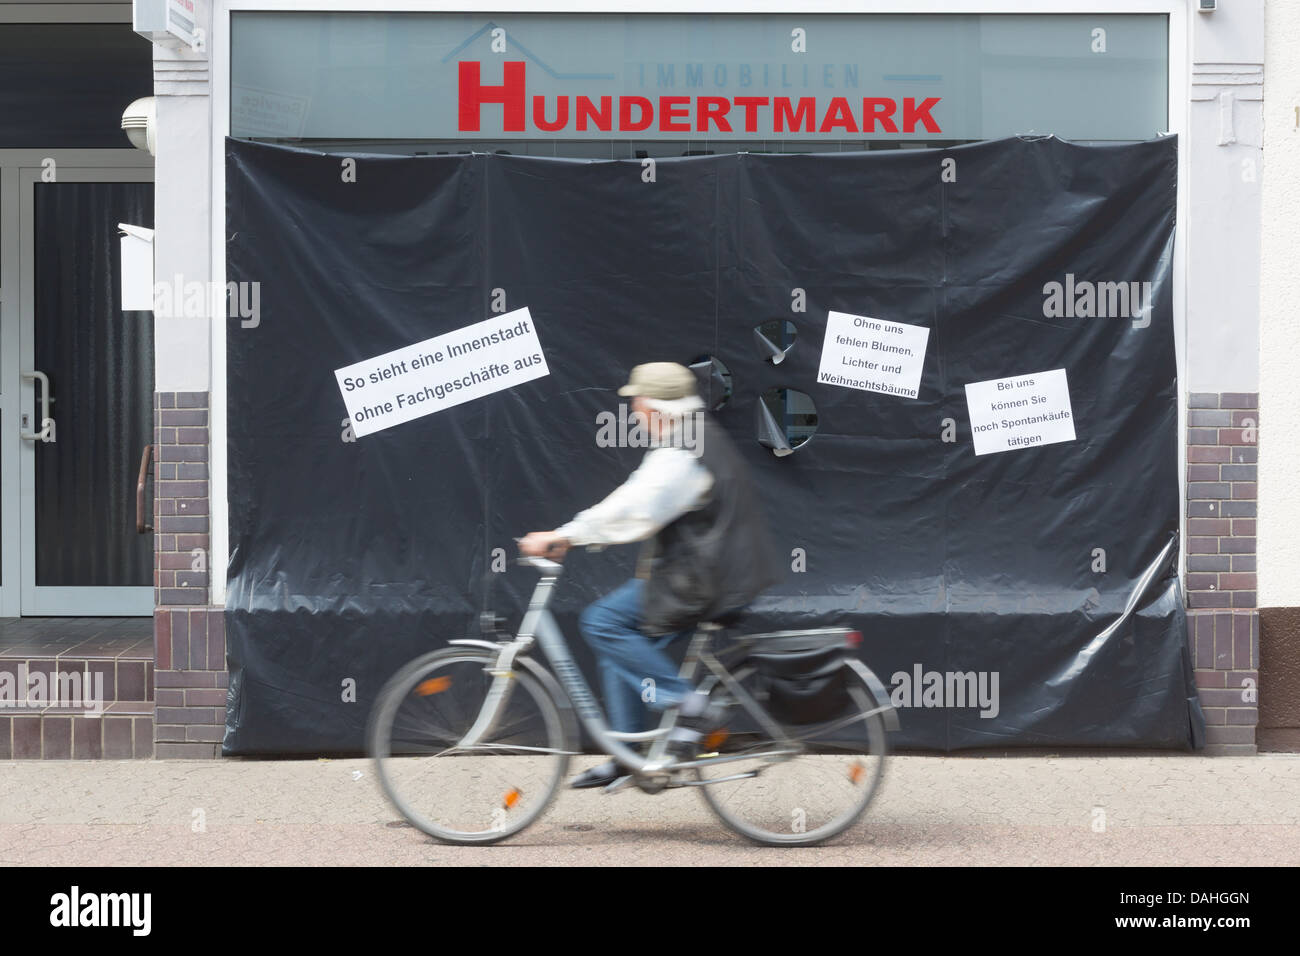 Retail dealers cover showcases to demonstrate against online dealers, Toenisvorst, Germany. - Stock Image